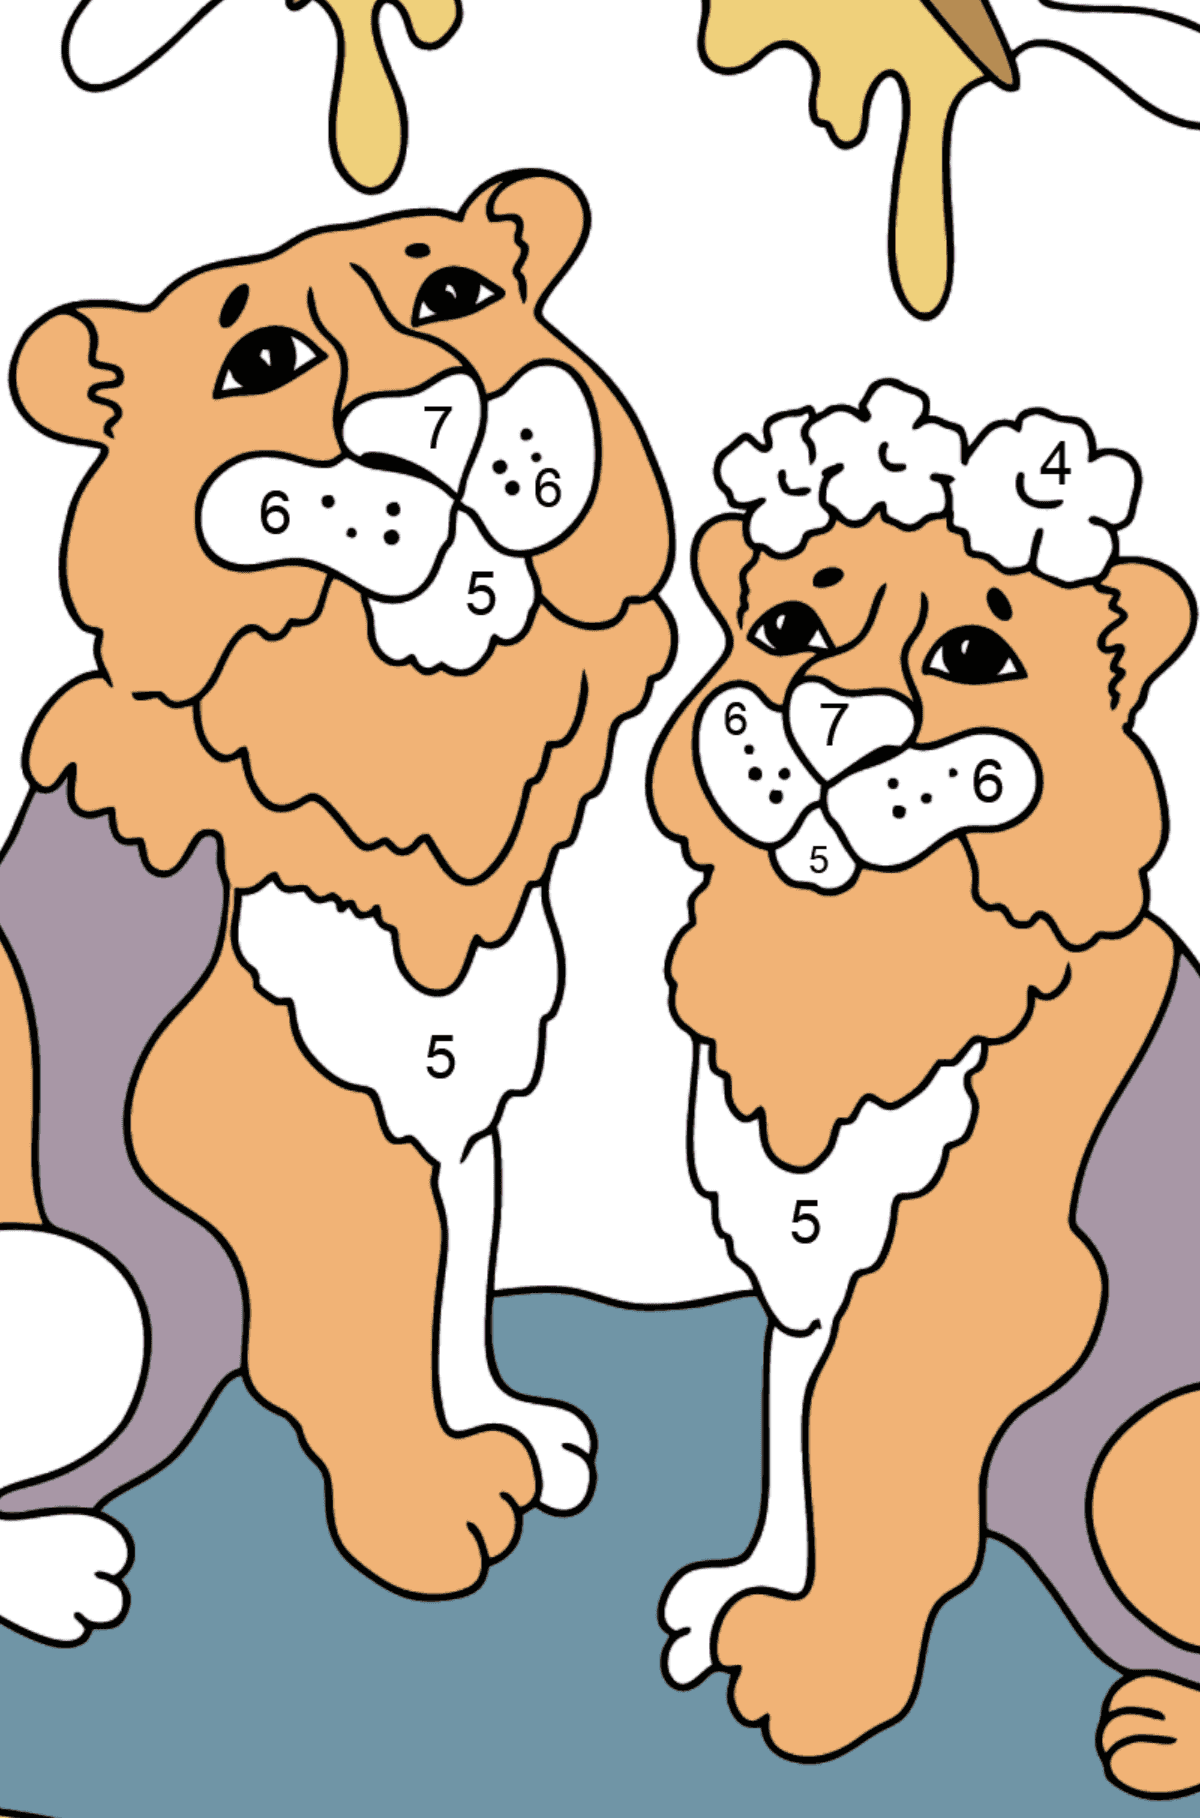 Coloring Page - Tigers with Butterflies - Coloring by Numbers for Kids